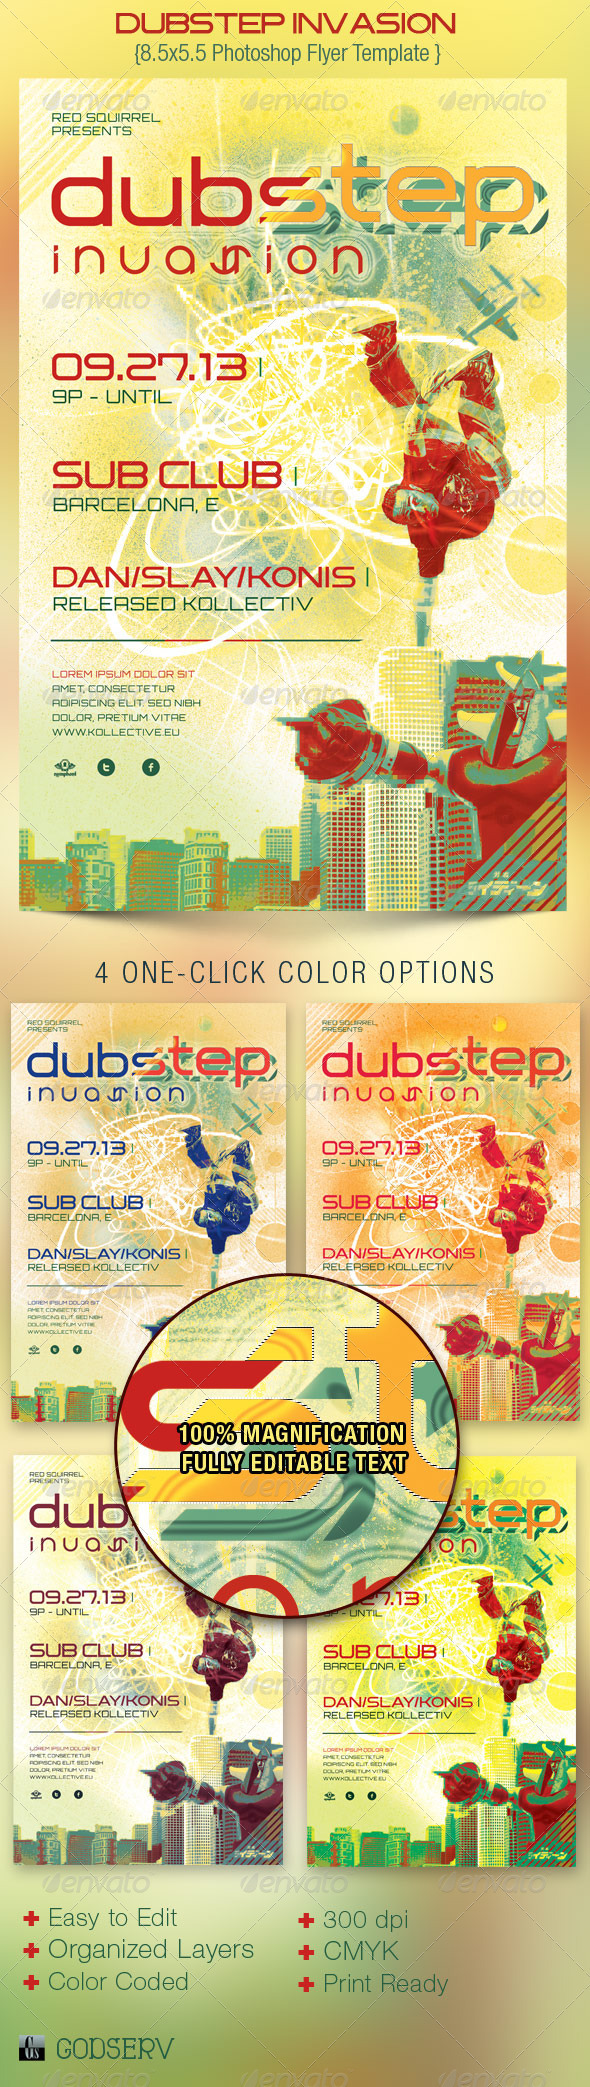 Dubstep Invasion Flyer Template - Clubs & Parties Events